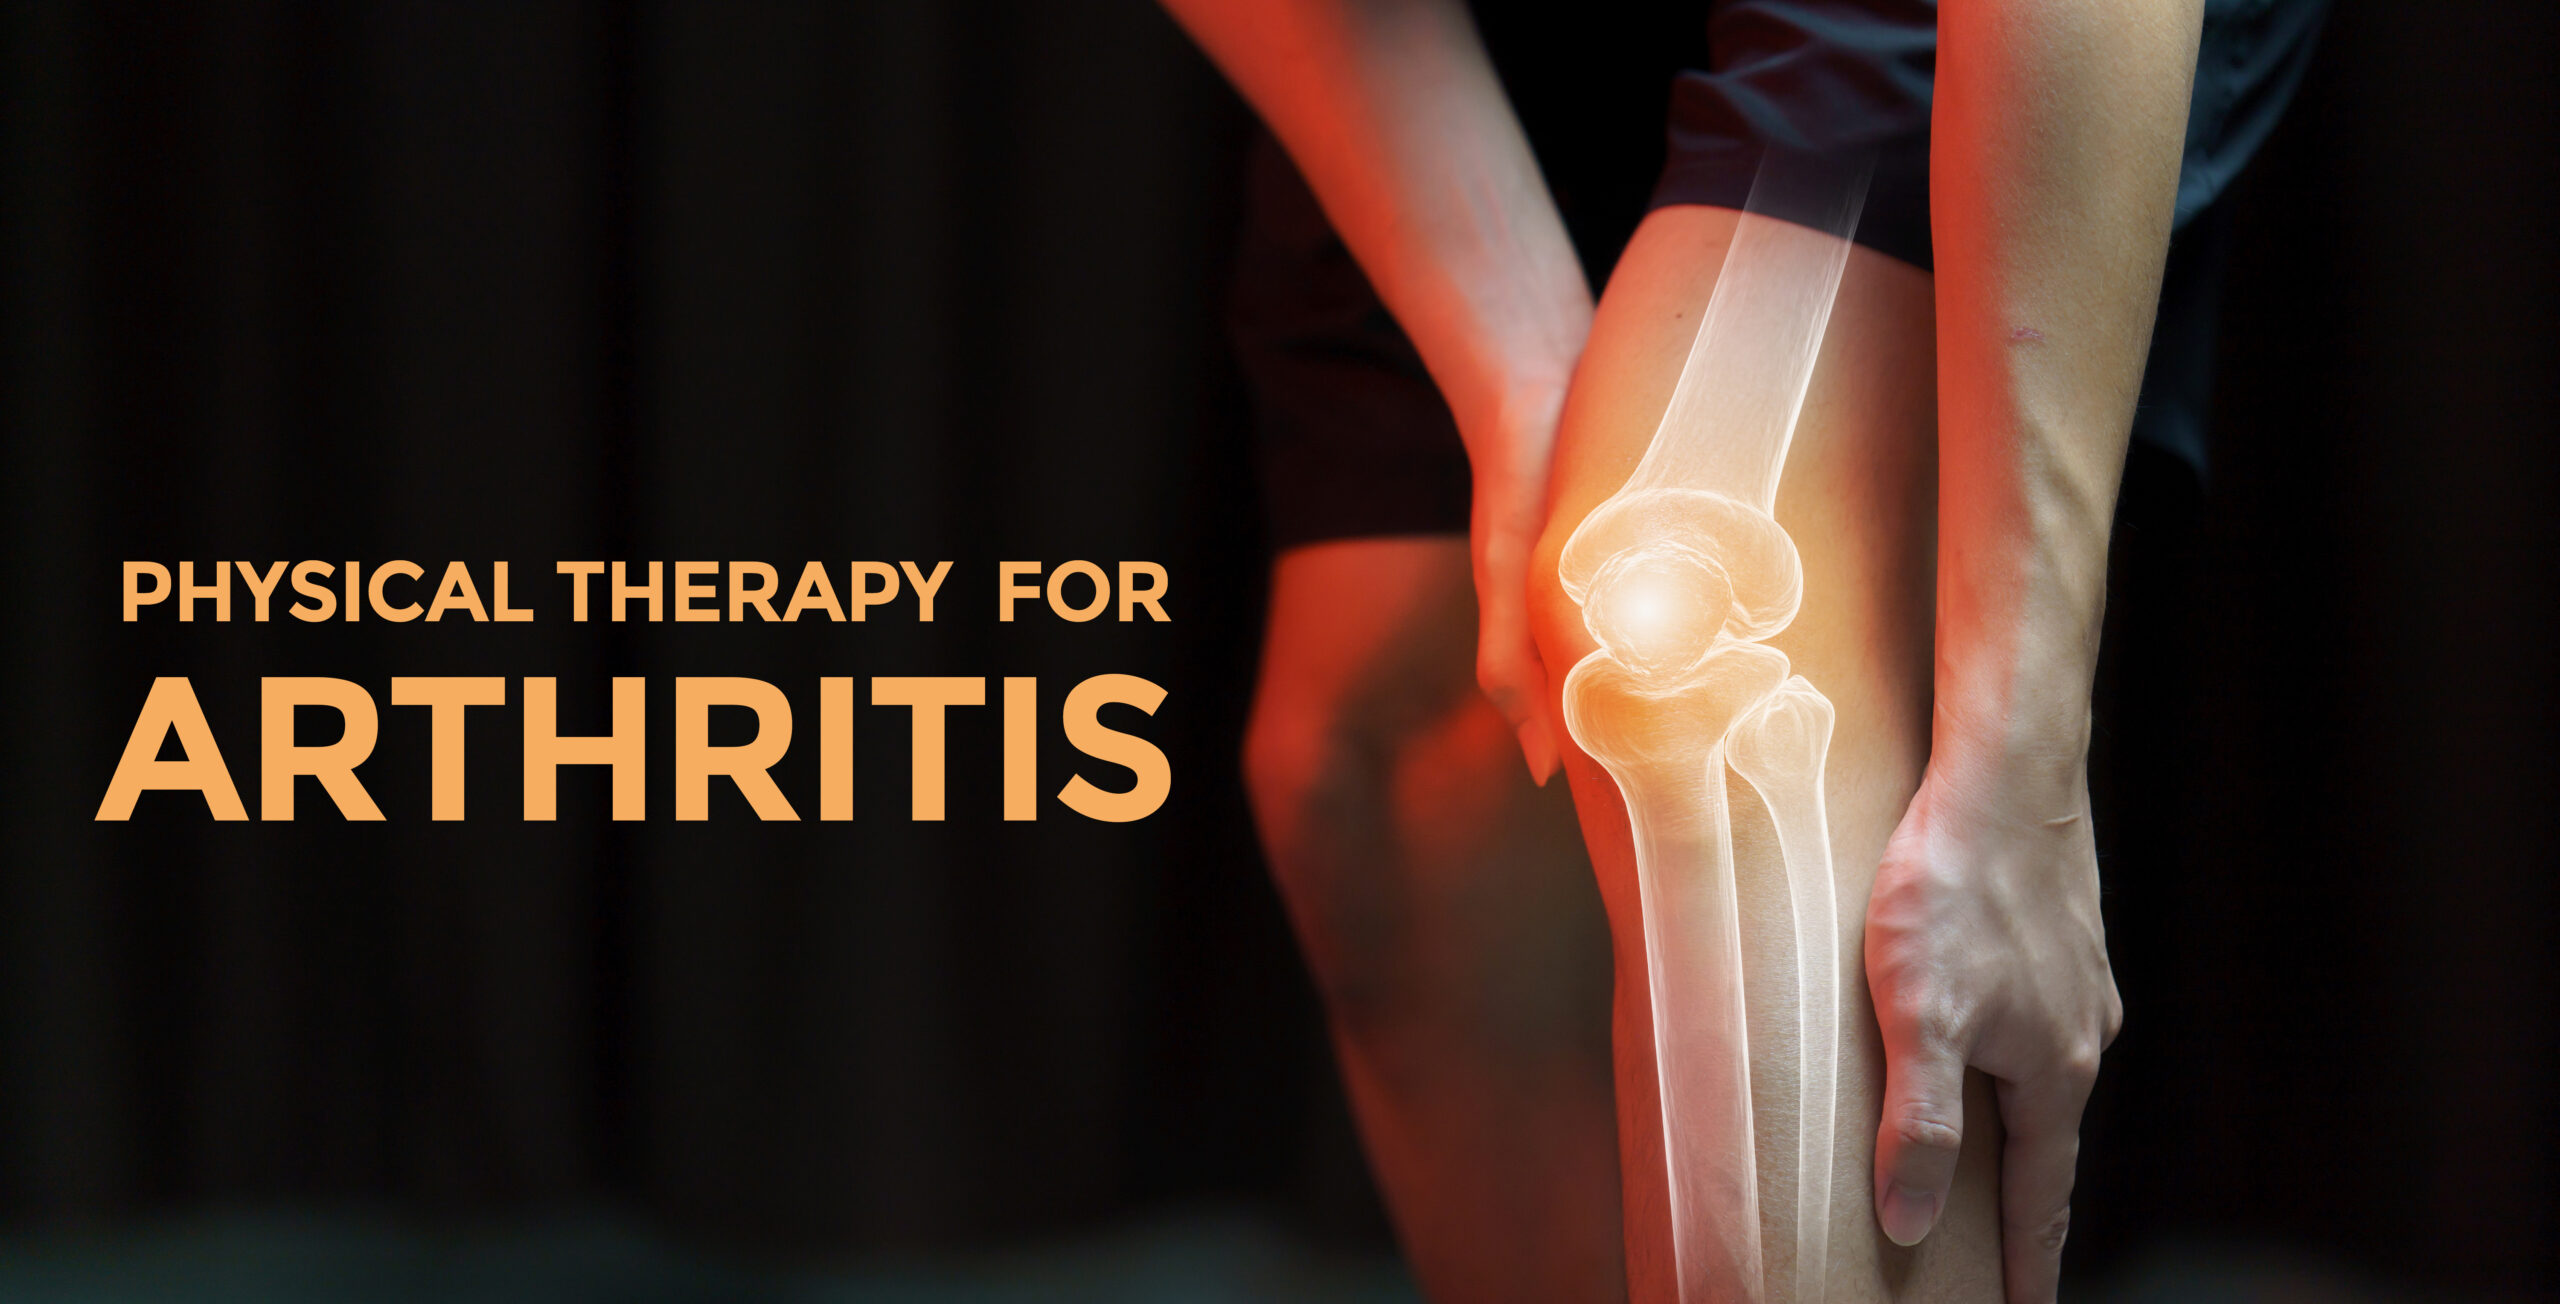 Physical Therapy for arthritis by western new york physical and occupational therapy